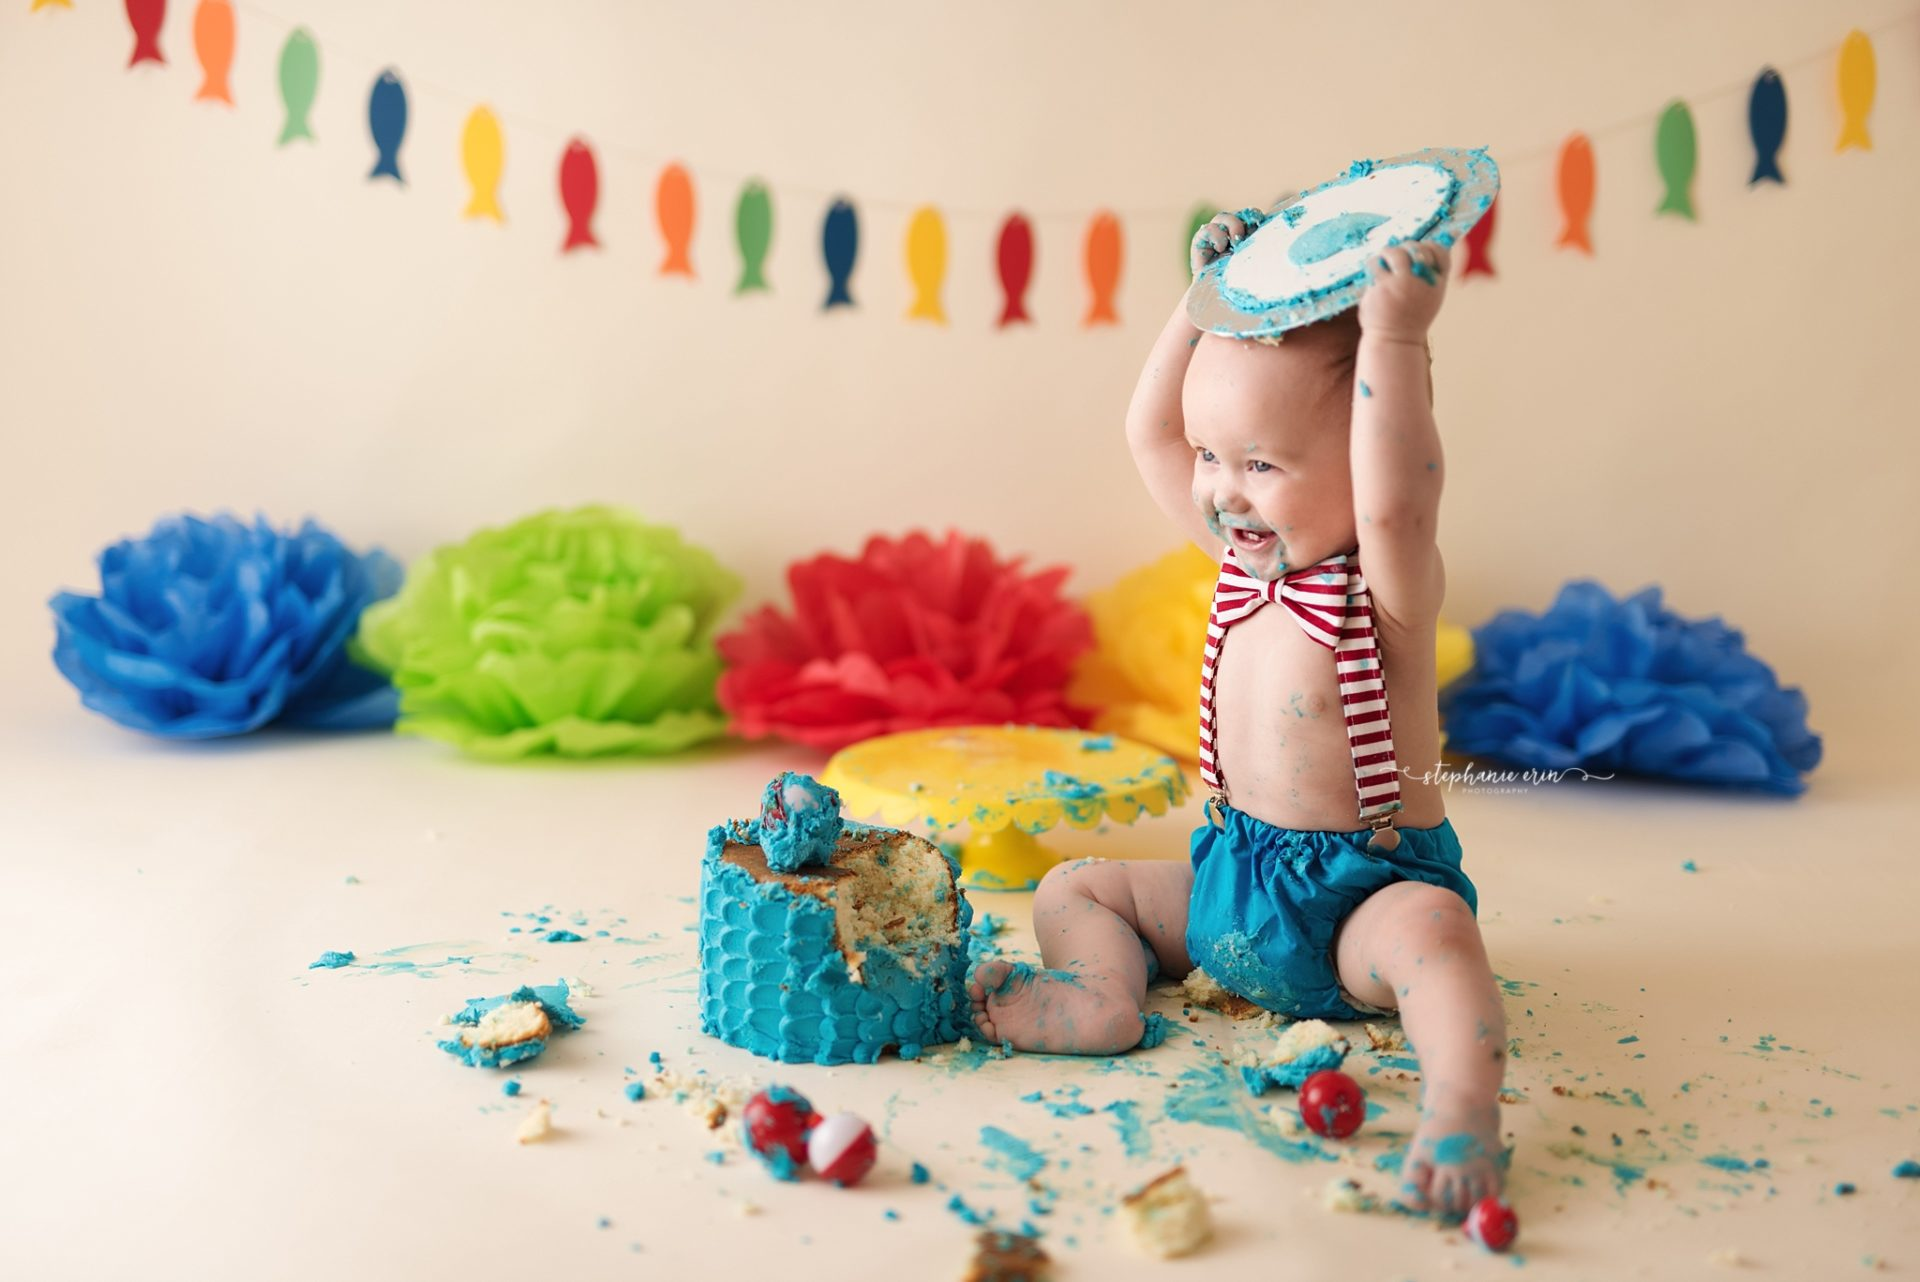 Cohen's O-FISH-ALLY ONE Cake Smash Photography Session | St George, Utah + Southern Utah Newborn Photography Studio | Stephanie Erin Photography